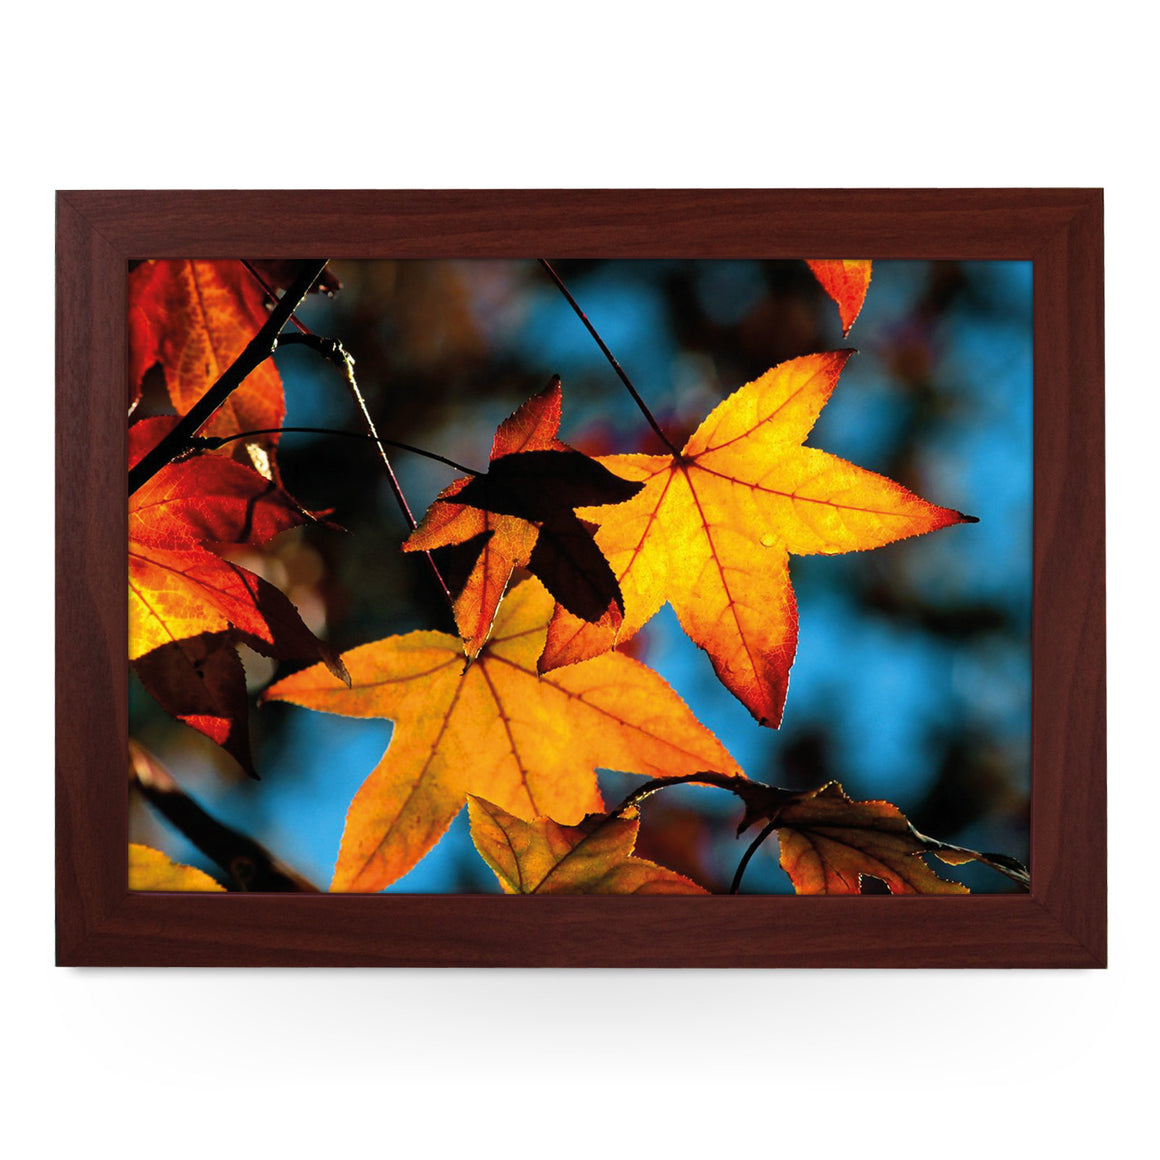 Autumn Leaves Lap Tray - L0394